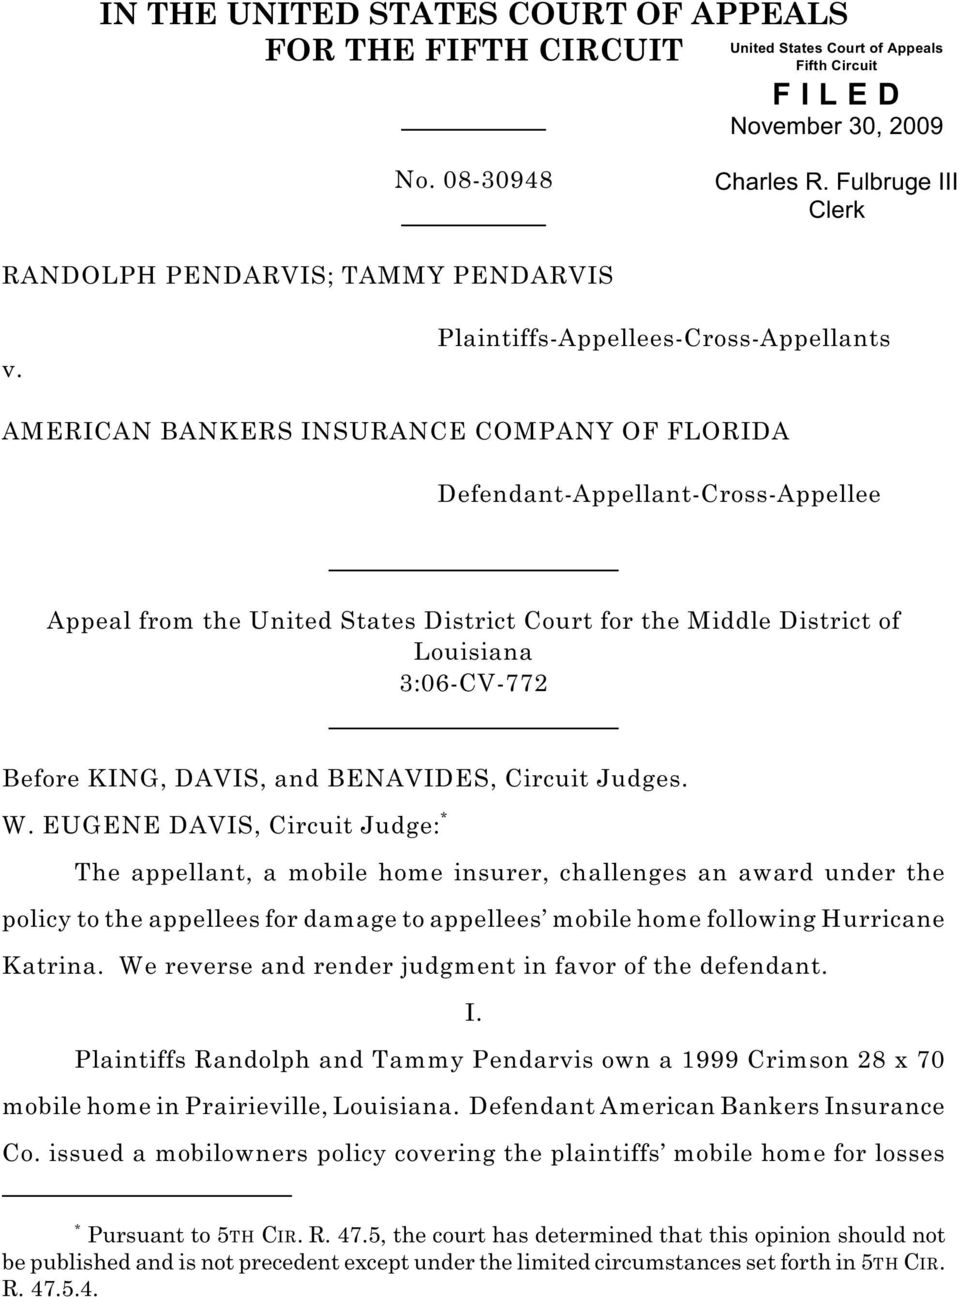 Plaintiffs-Appellees-Cross-Appellants AMERICAN BANKERS INSURANCE COMPANY OF FLORIDA Defendant-Appellant-Cross-Appellee Appeal from the United States District Court for the Middle District of